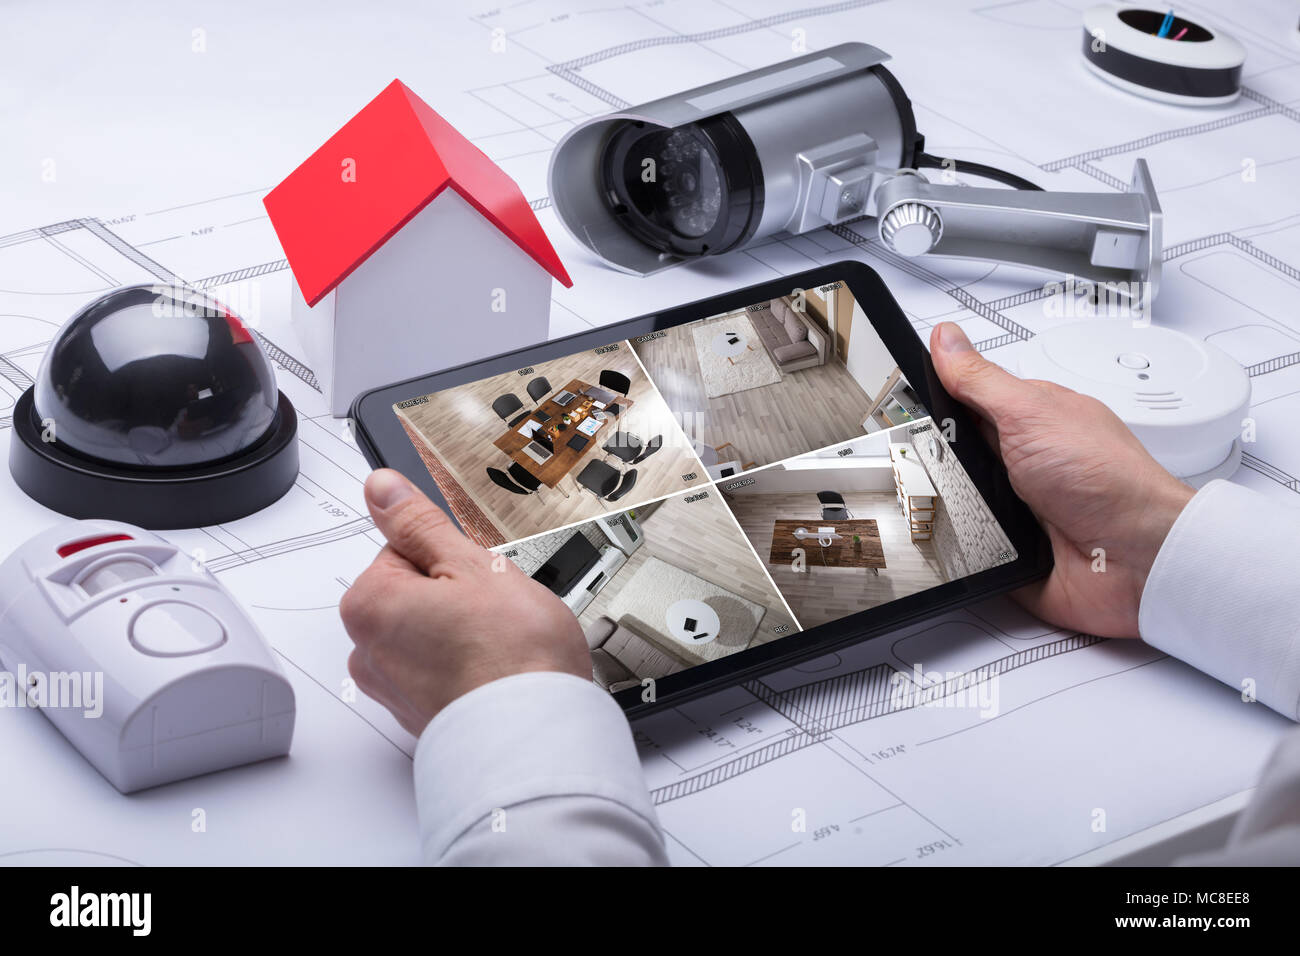 A Person Watching Footage On Digital Tablet With Security Equipments And House Model On Blueprint - Stock Image